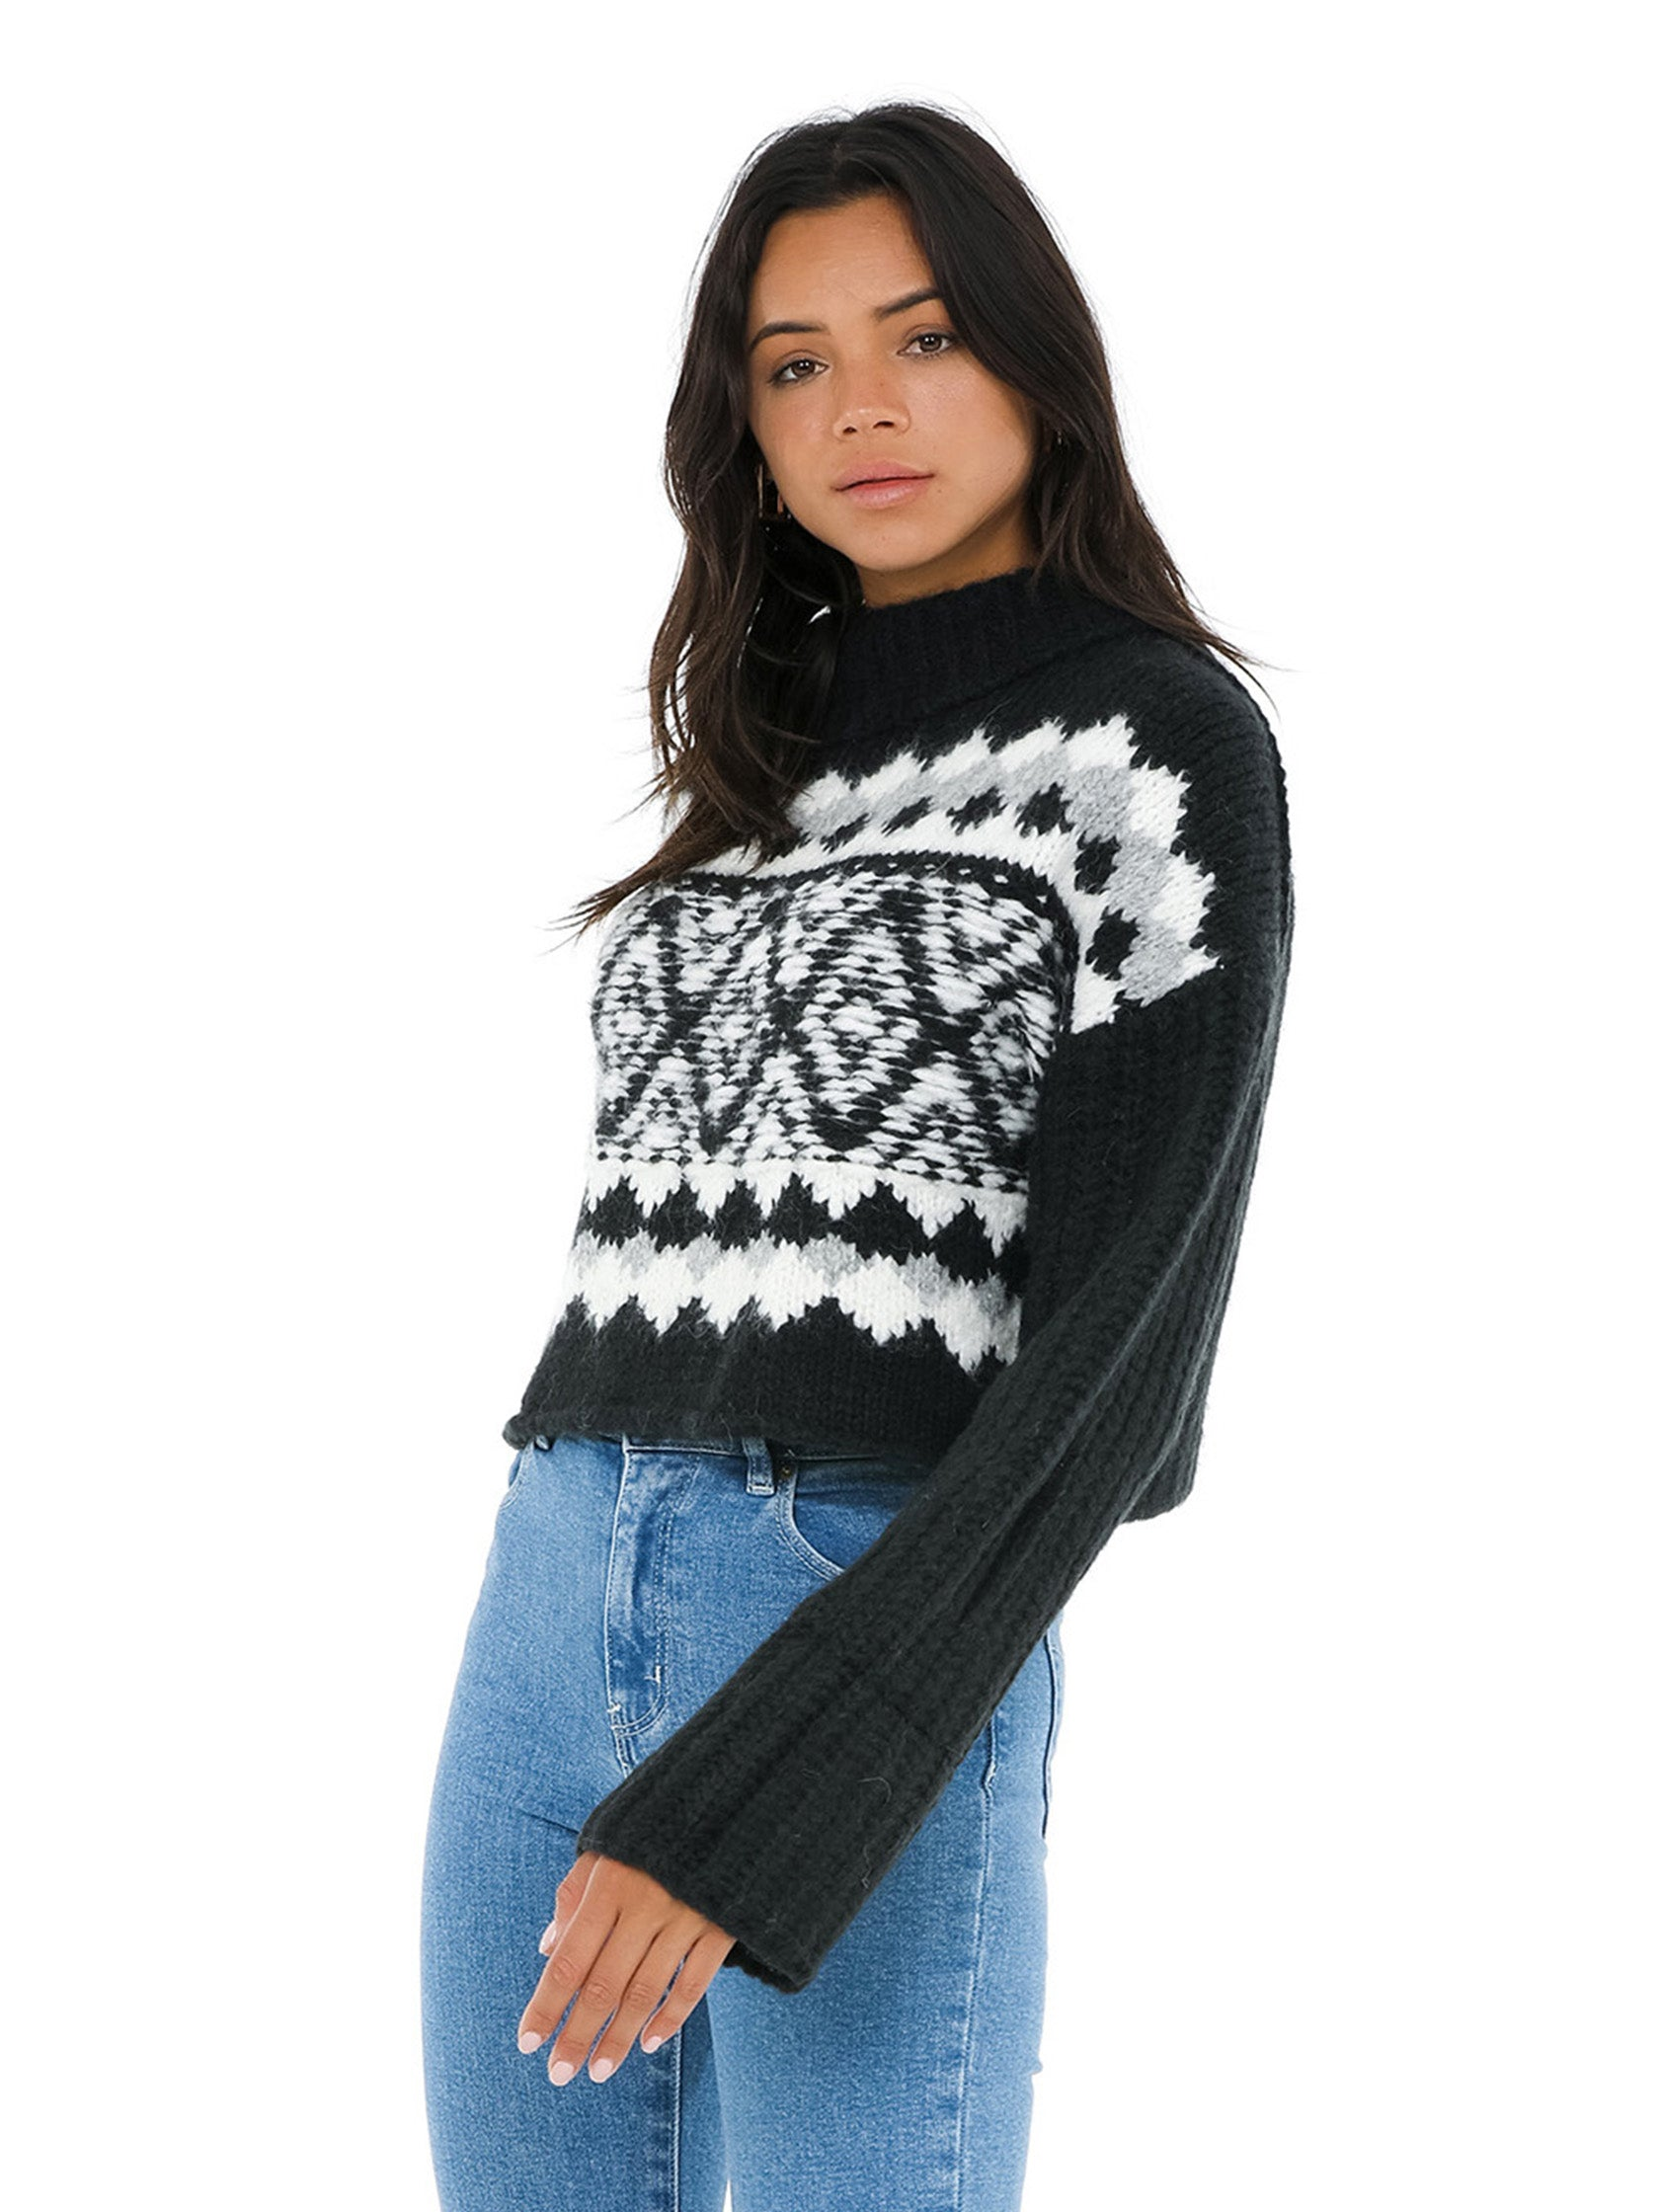 Women wearing a sweater rental from Free People called Alpine Pullover